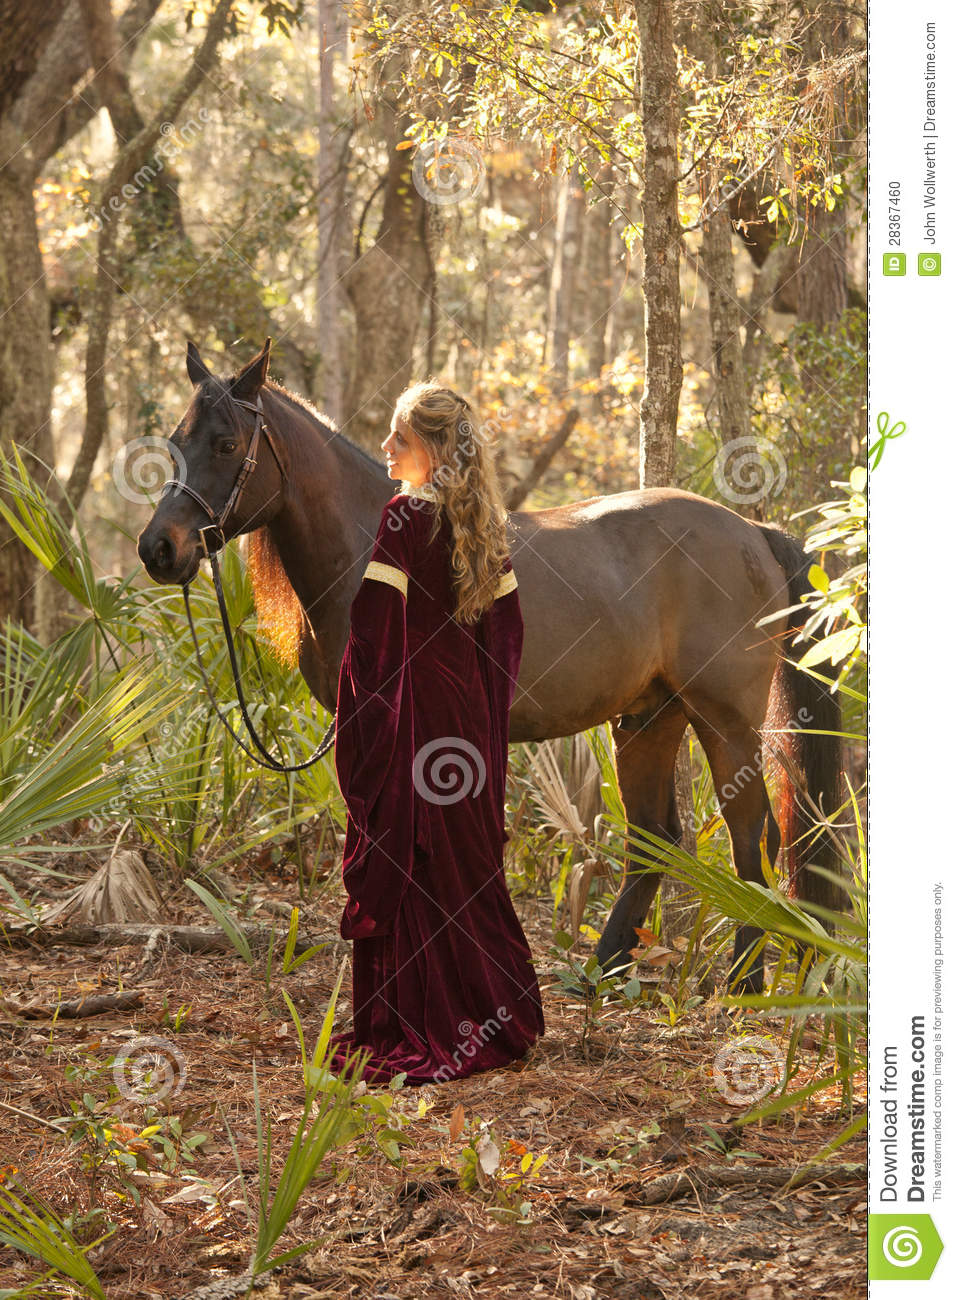 Woman In Medieval Dress With Horse In Forest Stock Photo